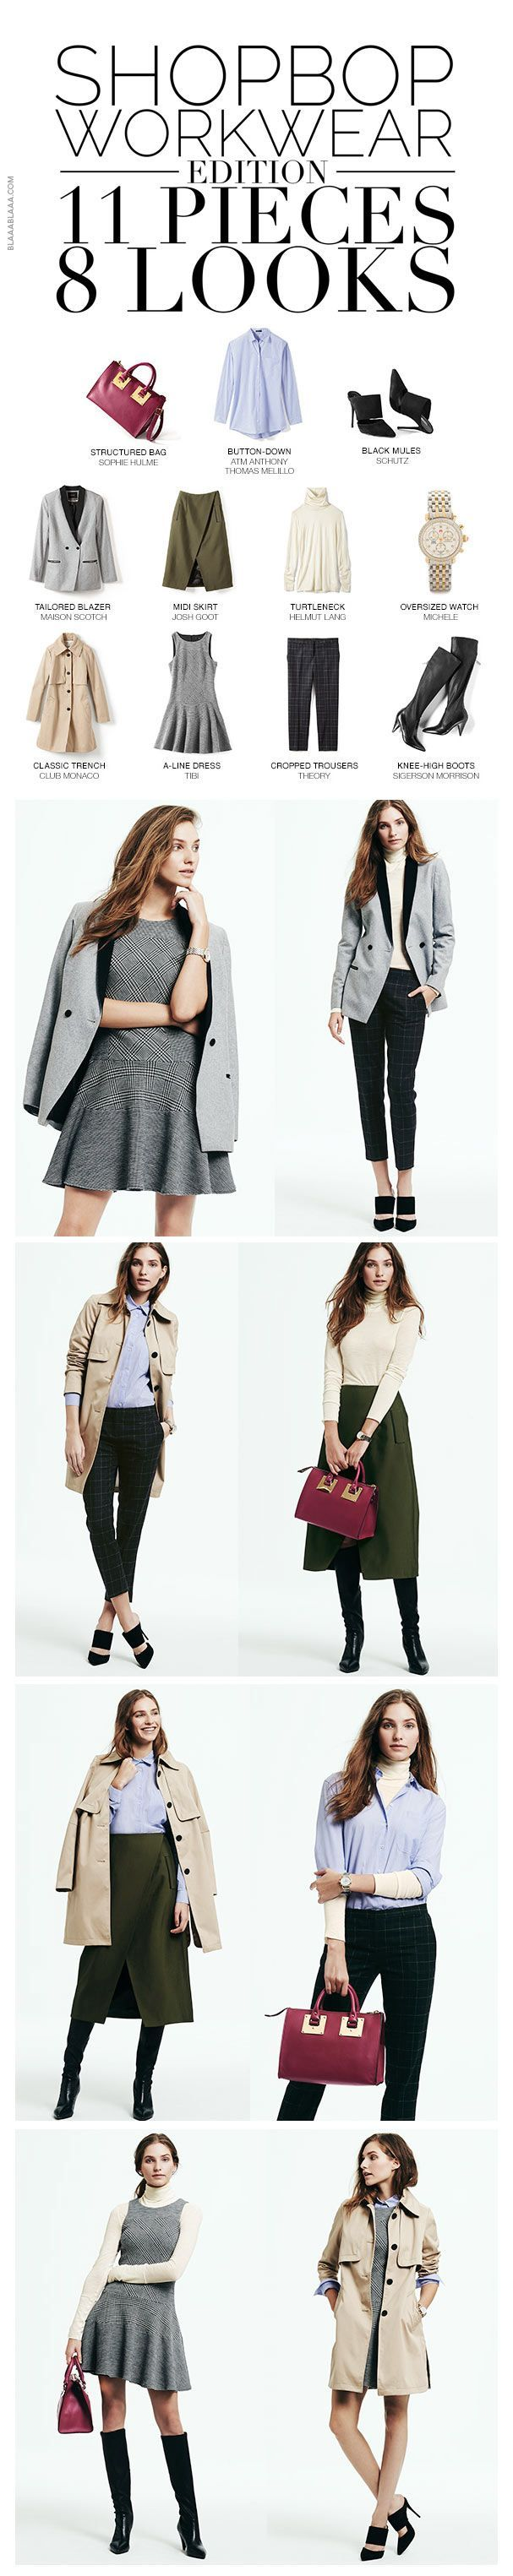 Shopbop Workwear Edition 11 Pieces – 8 Looks